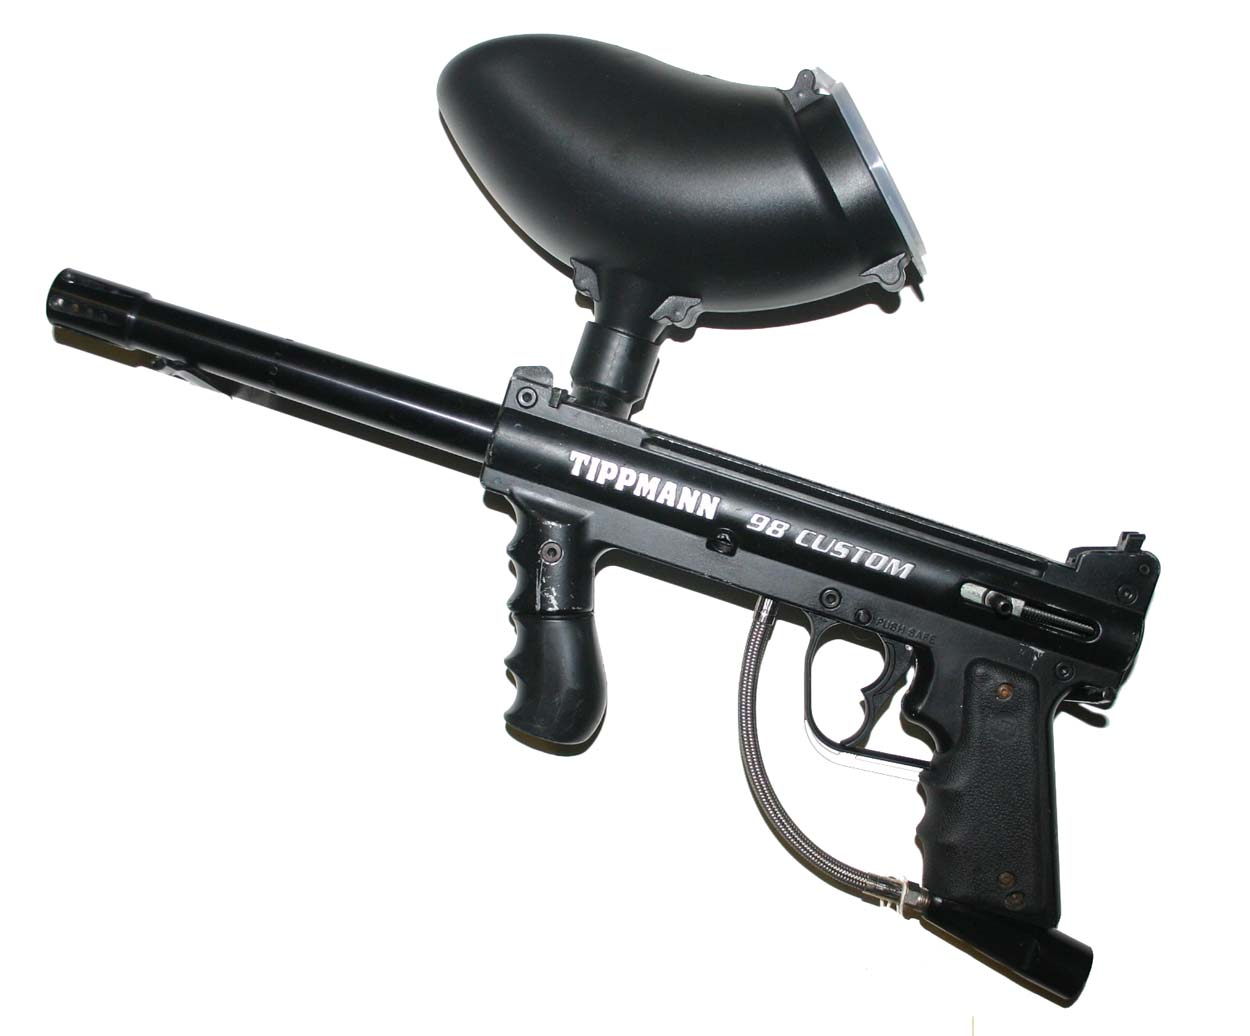 ... Tippmann 98 Custom Paintball Gun / Marker with Hopper & Double Trigger